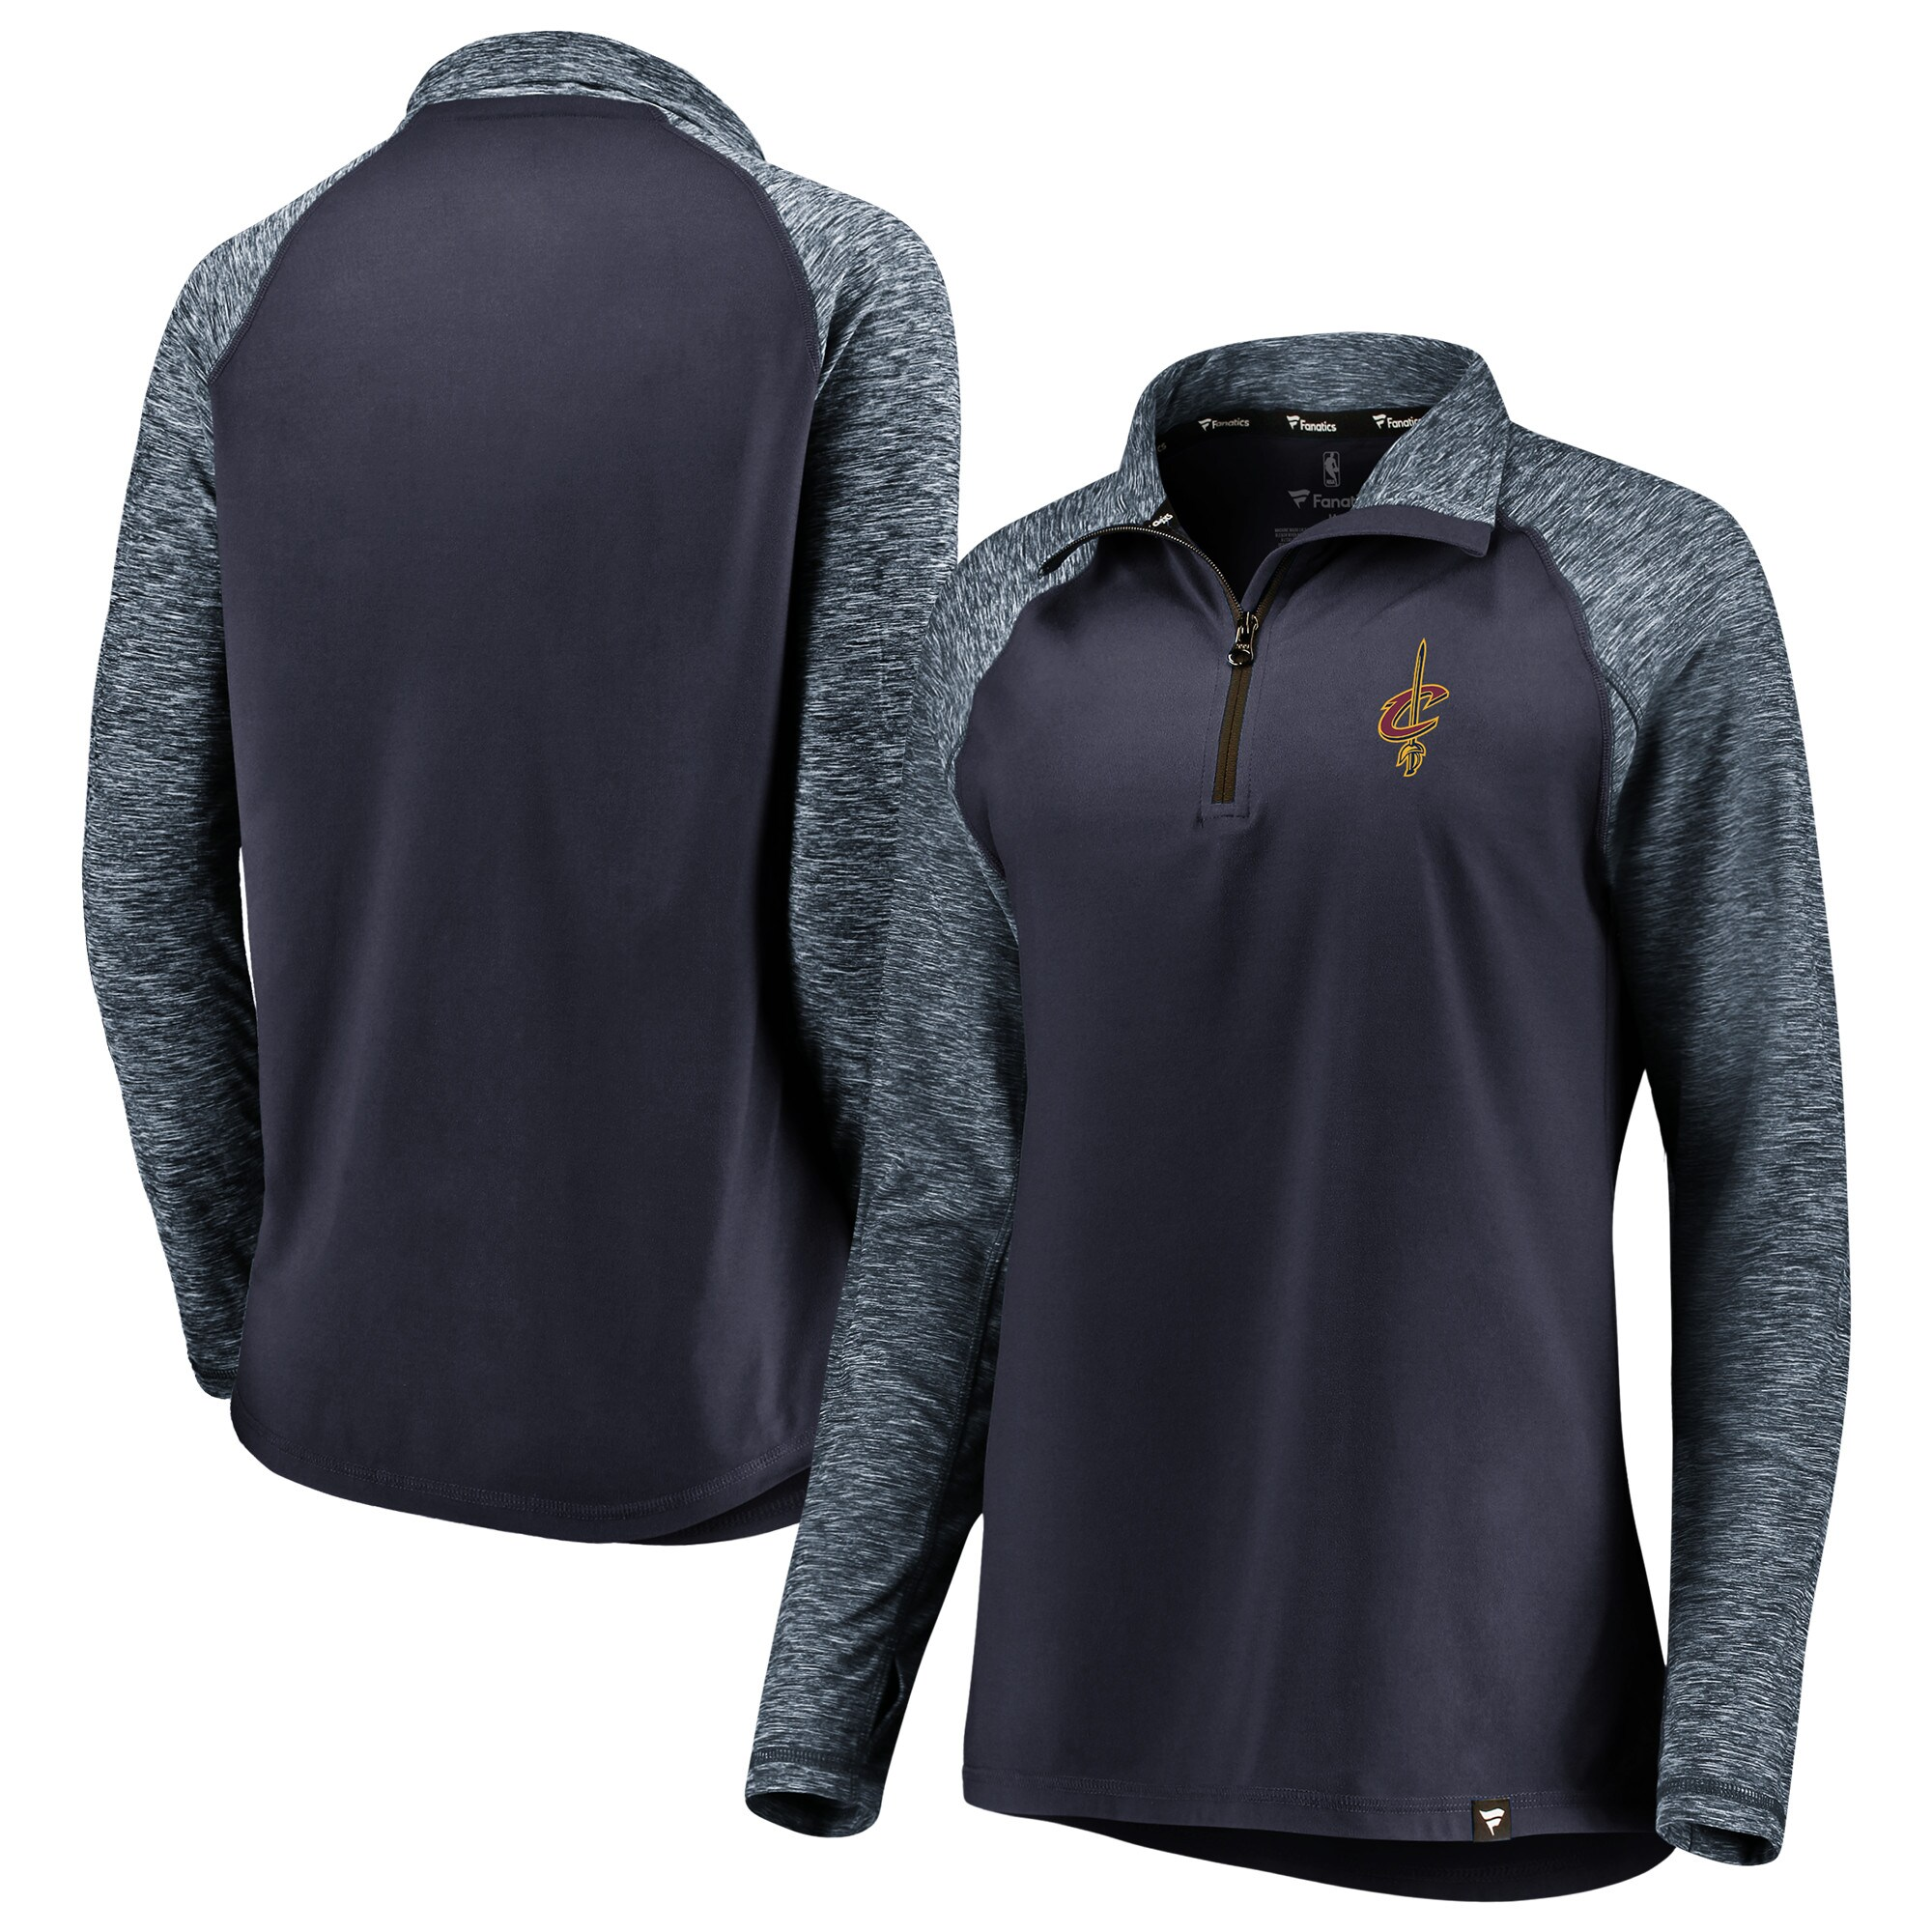 Cleveland Cavaliers Fanatics Branded Women's Made to Move Static Performance Raglan Sleeve Quarter-Zip Pullover Jacket - Navy/Heathered Navy